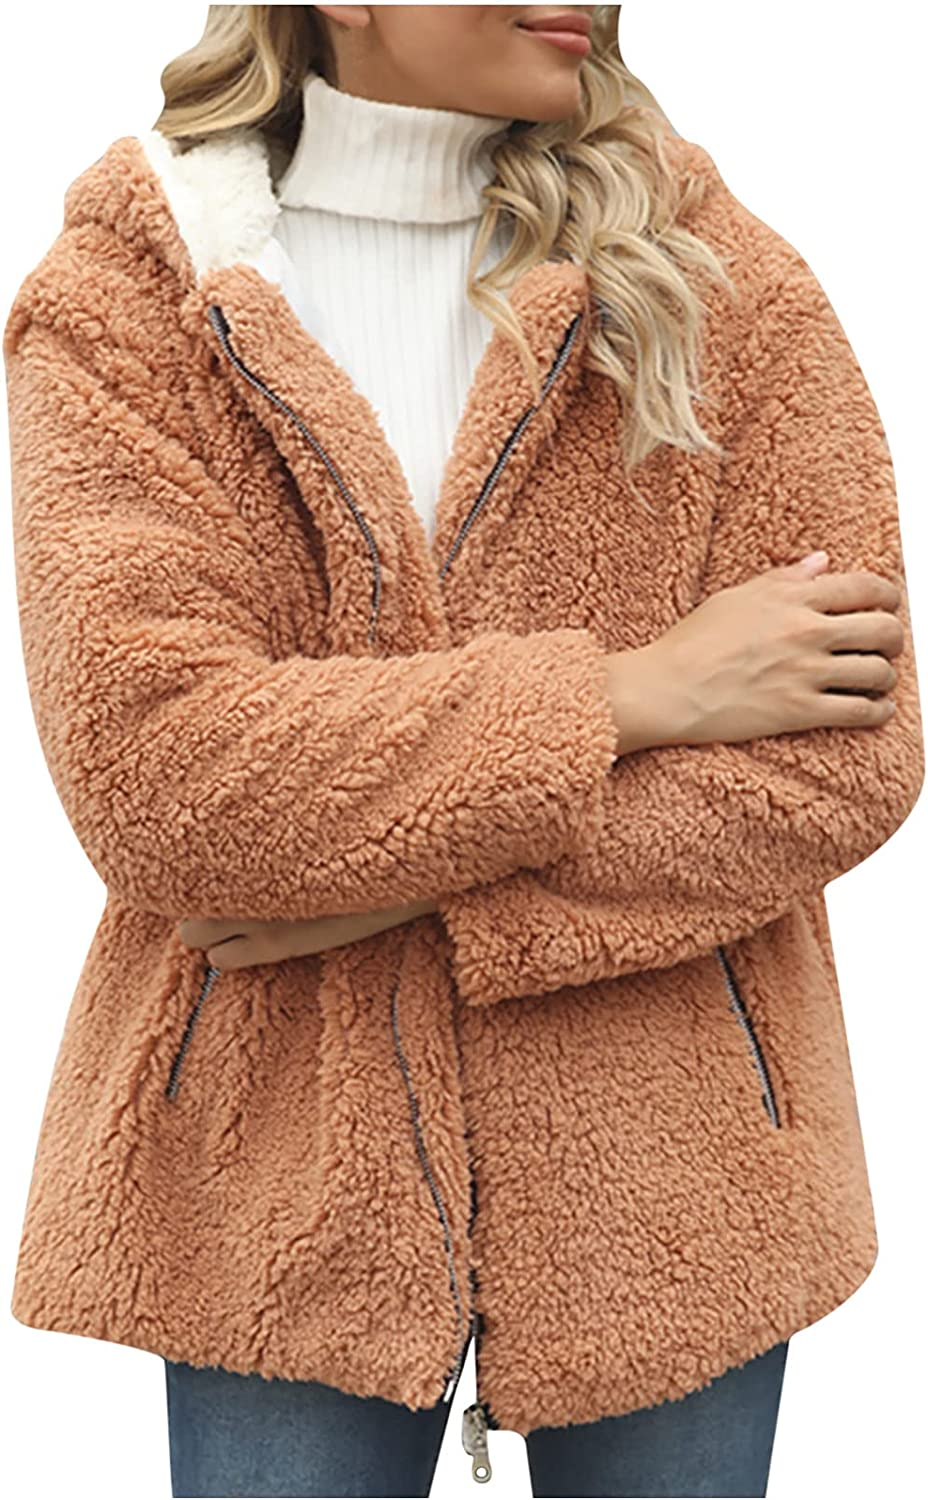 Womens Ladies Warm Faux Furry Coat Jacket Winter Warm Hooded Solid Outerwear Long Sleeve Shirt Tops Plush Soft Coats